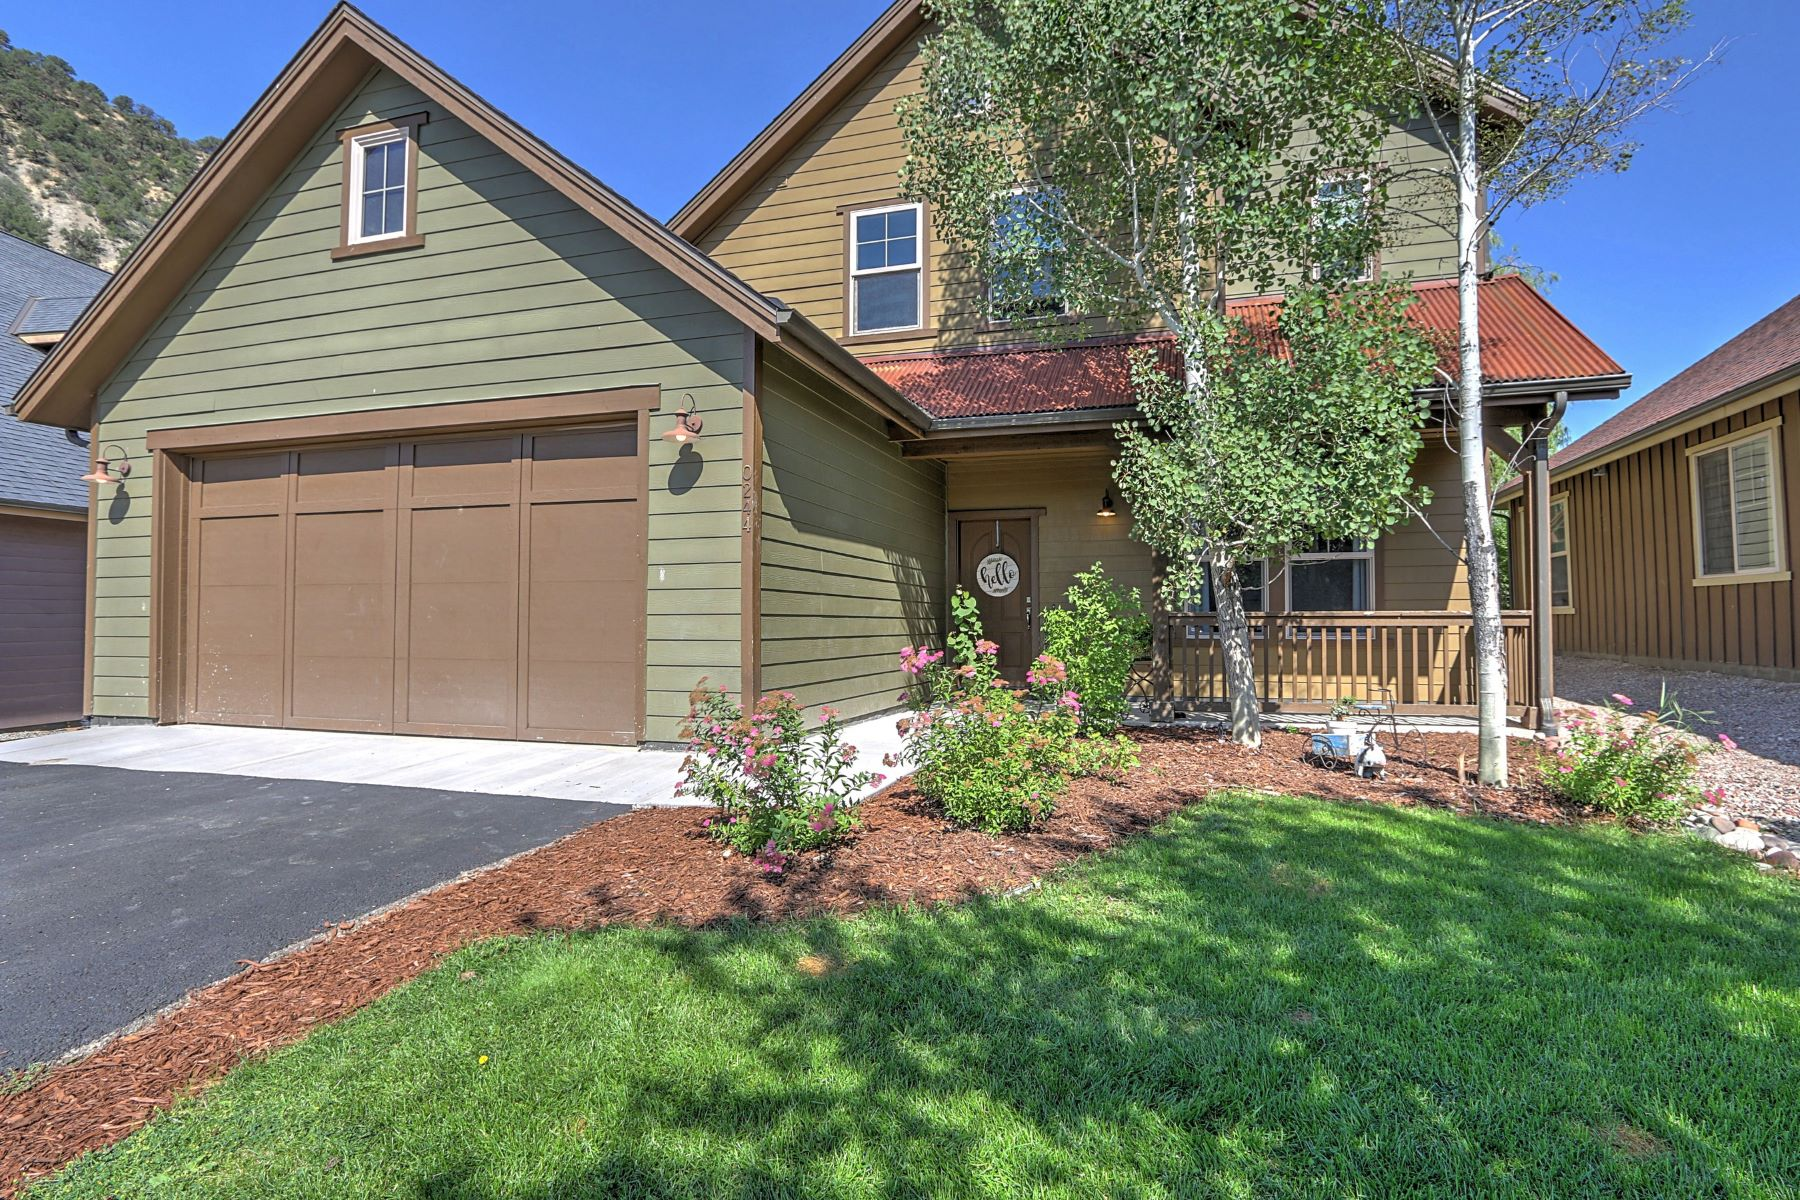 Single Family Homes for Sale at IRONBRIDGE, LOT 204 244 Red Bluff Vista Glenwood Springs, Colorado 81601 United States